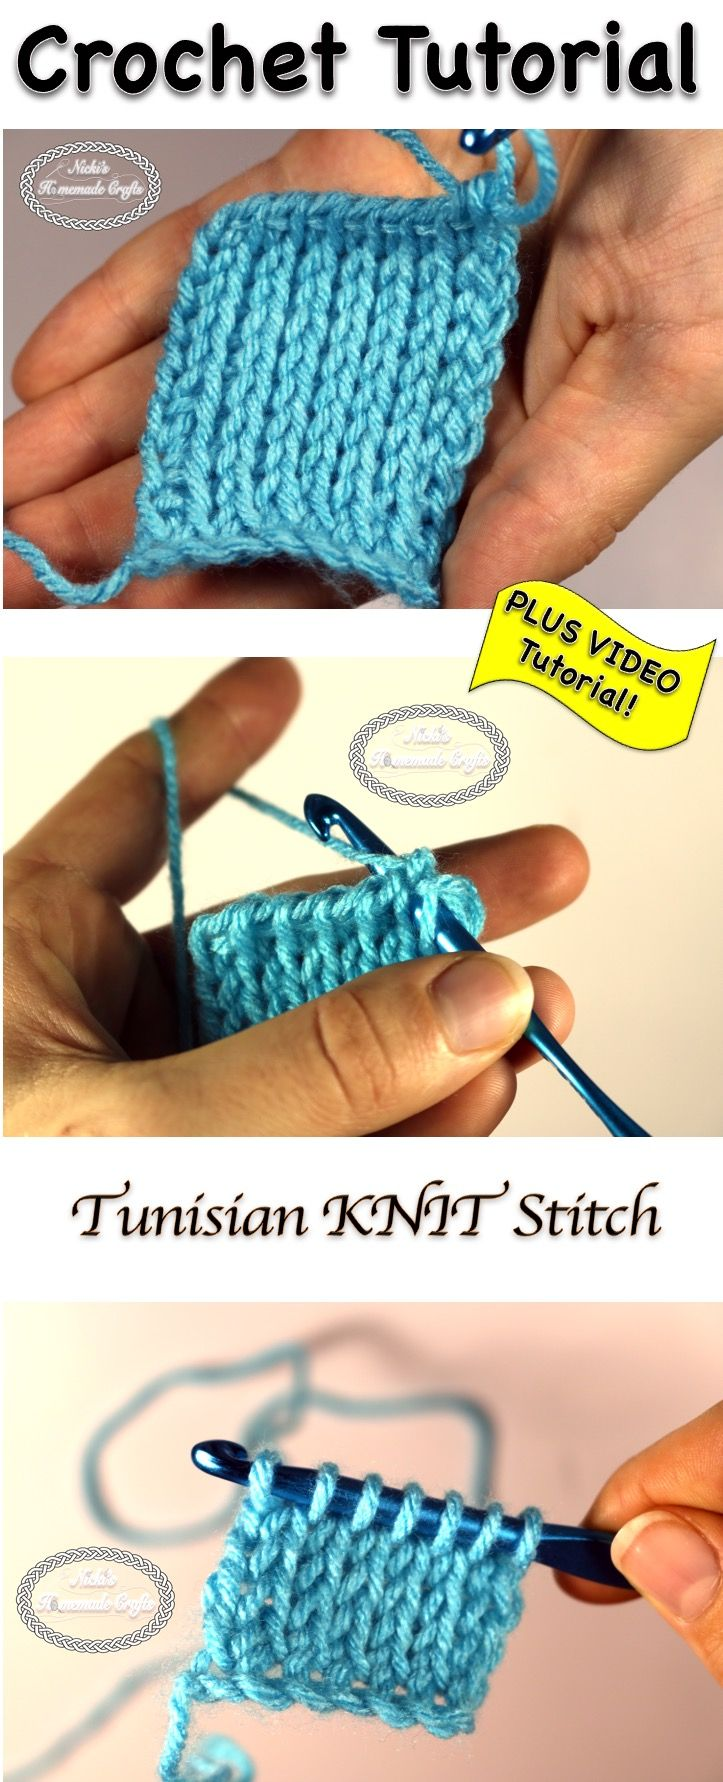 Tutorial: Tunisian KNIT Stitch - Crochet Stitch Tutorial | Tunesisch ...